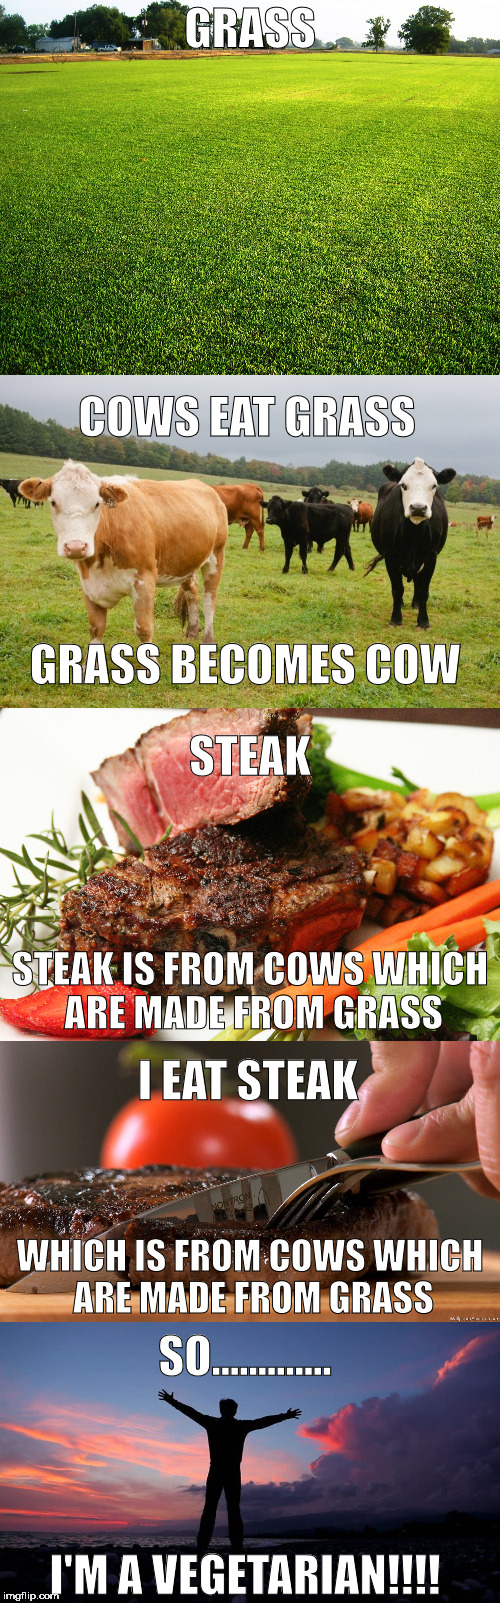 Yummy Logic | GRASS COWS EAT GRASS GRASS BECOMES COW STEAK STEAK IS FROM COWS WHICH ARE MADE FROM GRASS I EAT STEAK WHICH IS FROM COWS WHICH ARE MADE FROM | image tagged in cow,steak,vegetarians | made w/ Imgflip meme maker